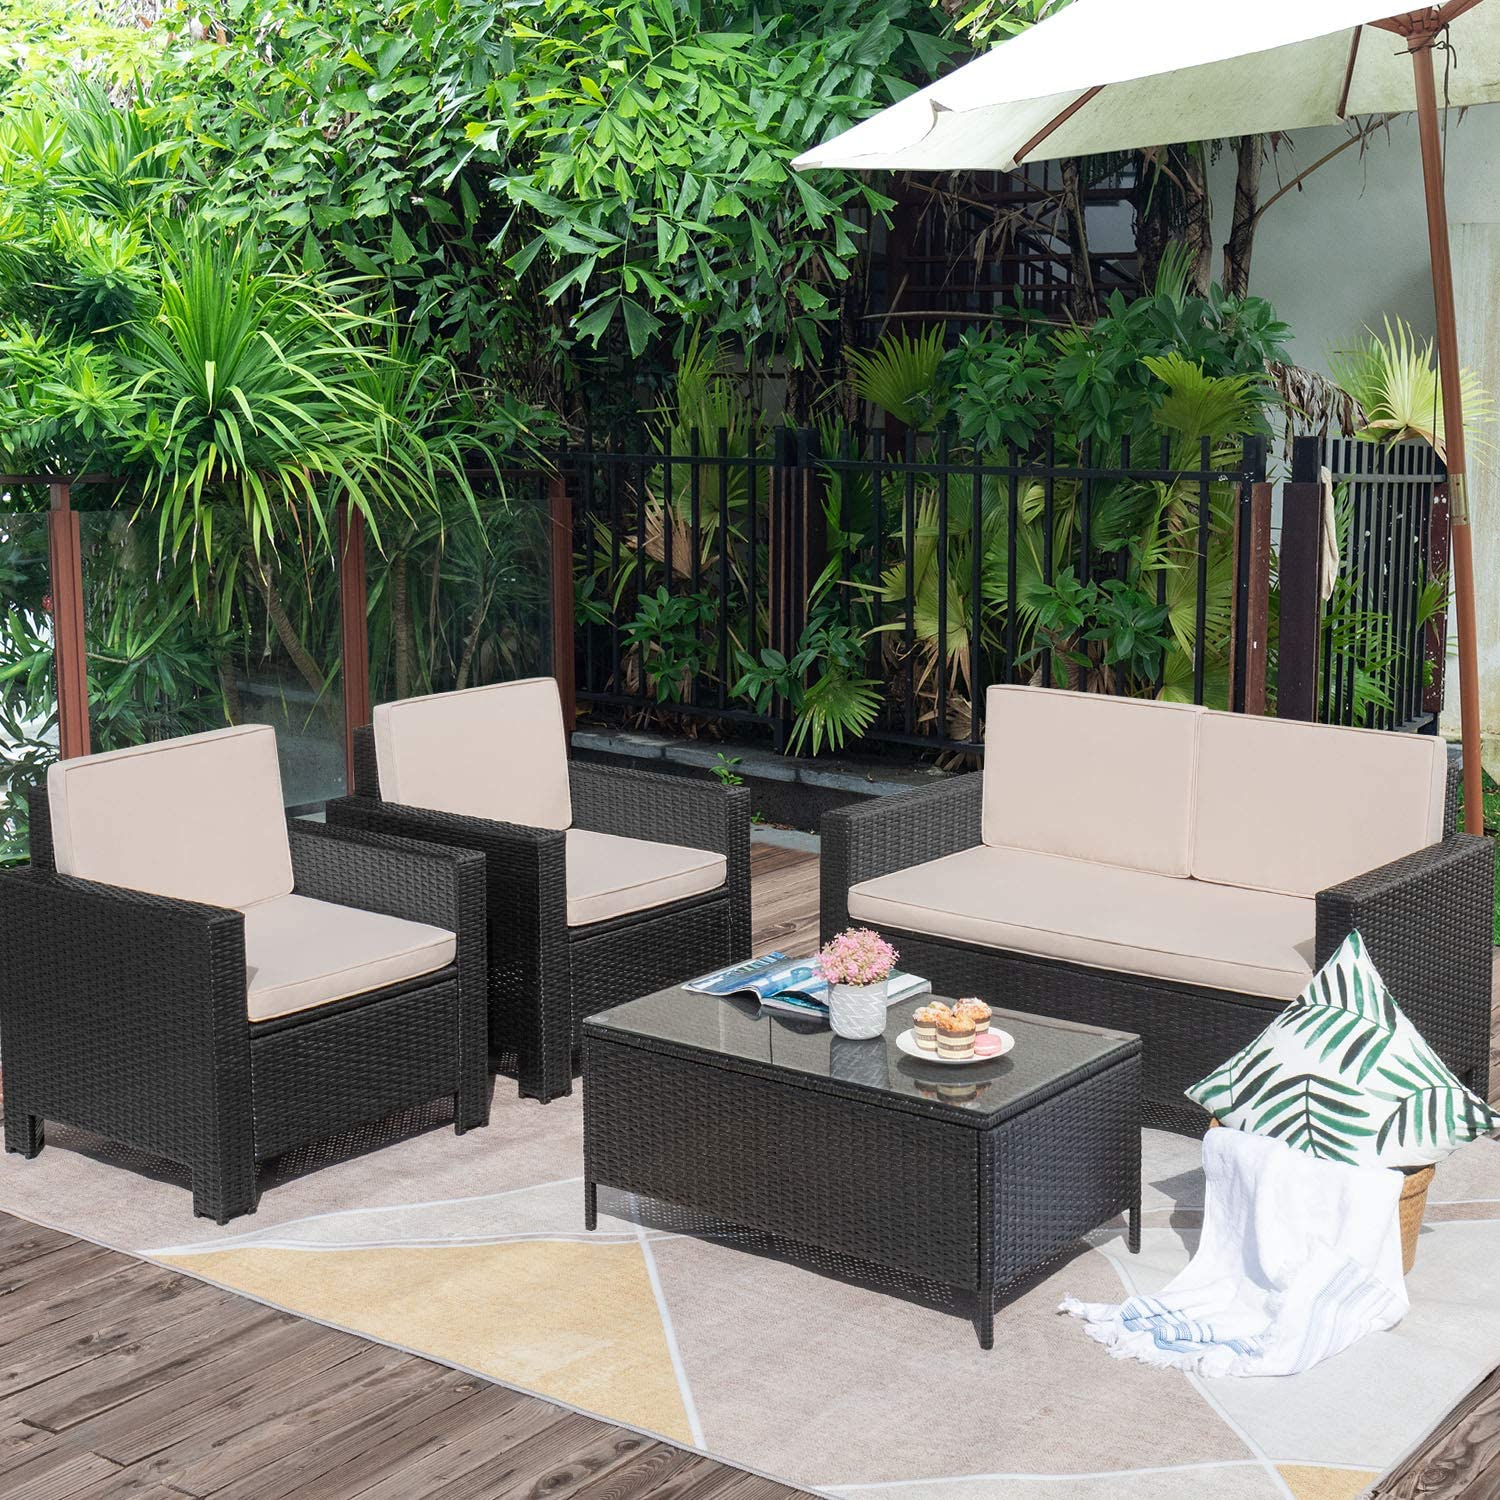 Flamaker 4 Pieces Outdoor Patio Furniture Sets Outdoor Conversation Set Poolside Lawn Chairs with Coffee Table for Poolside and Backyard Black